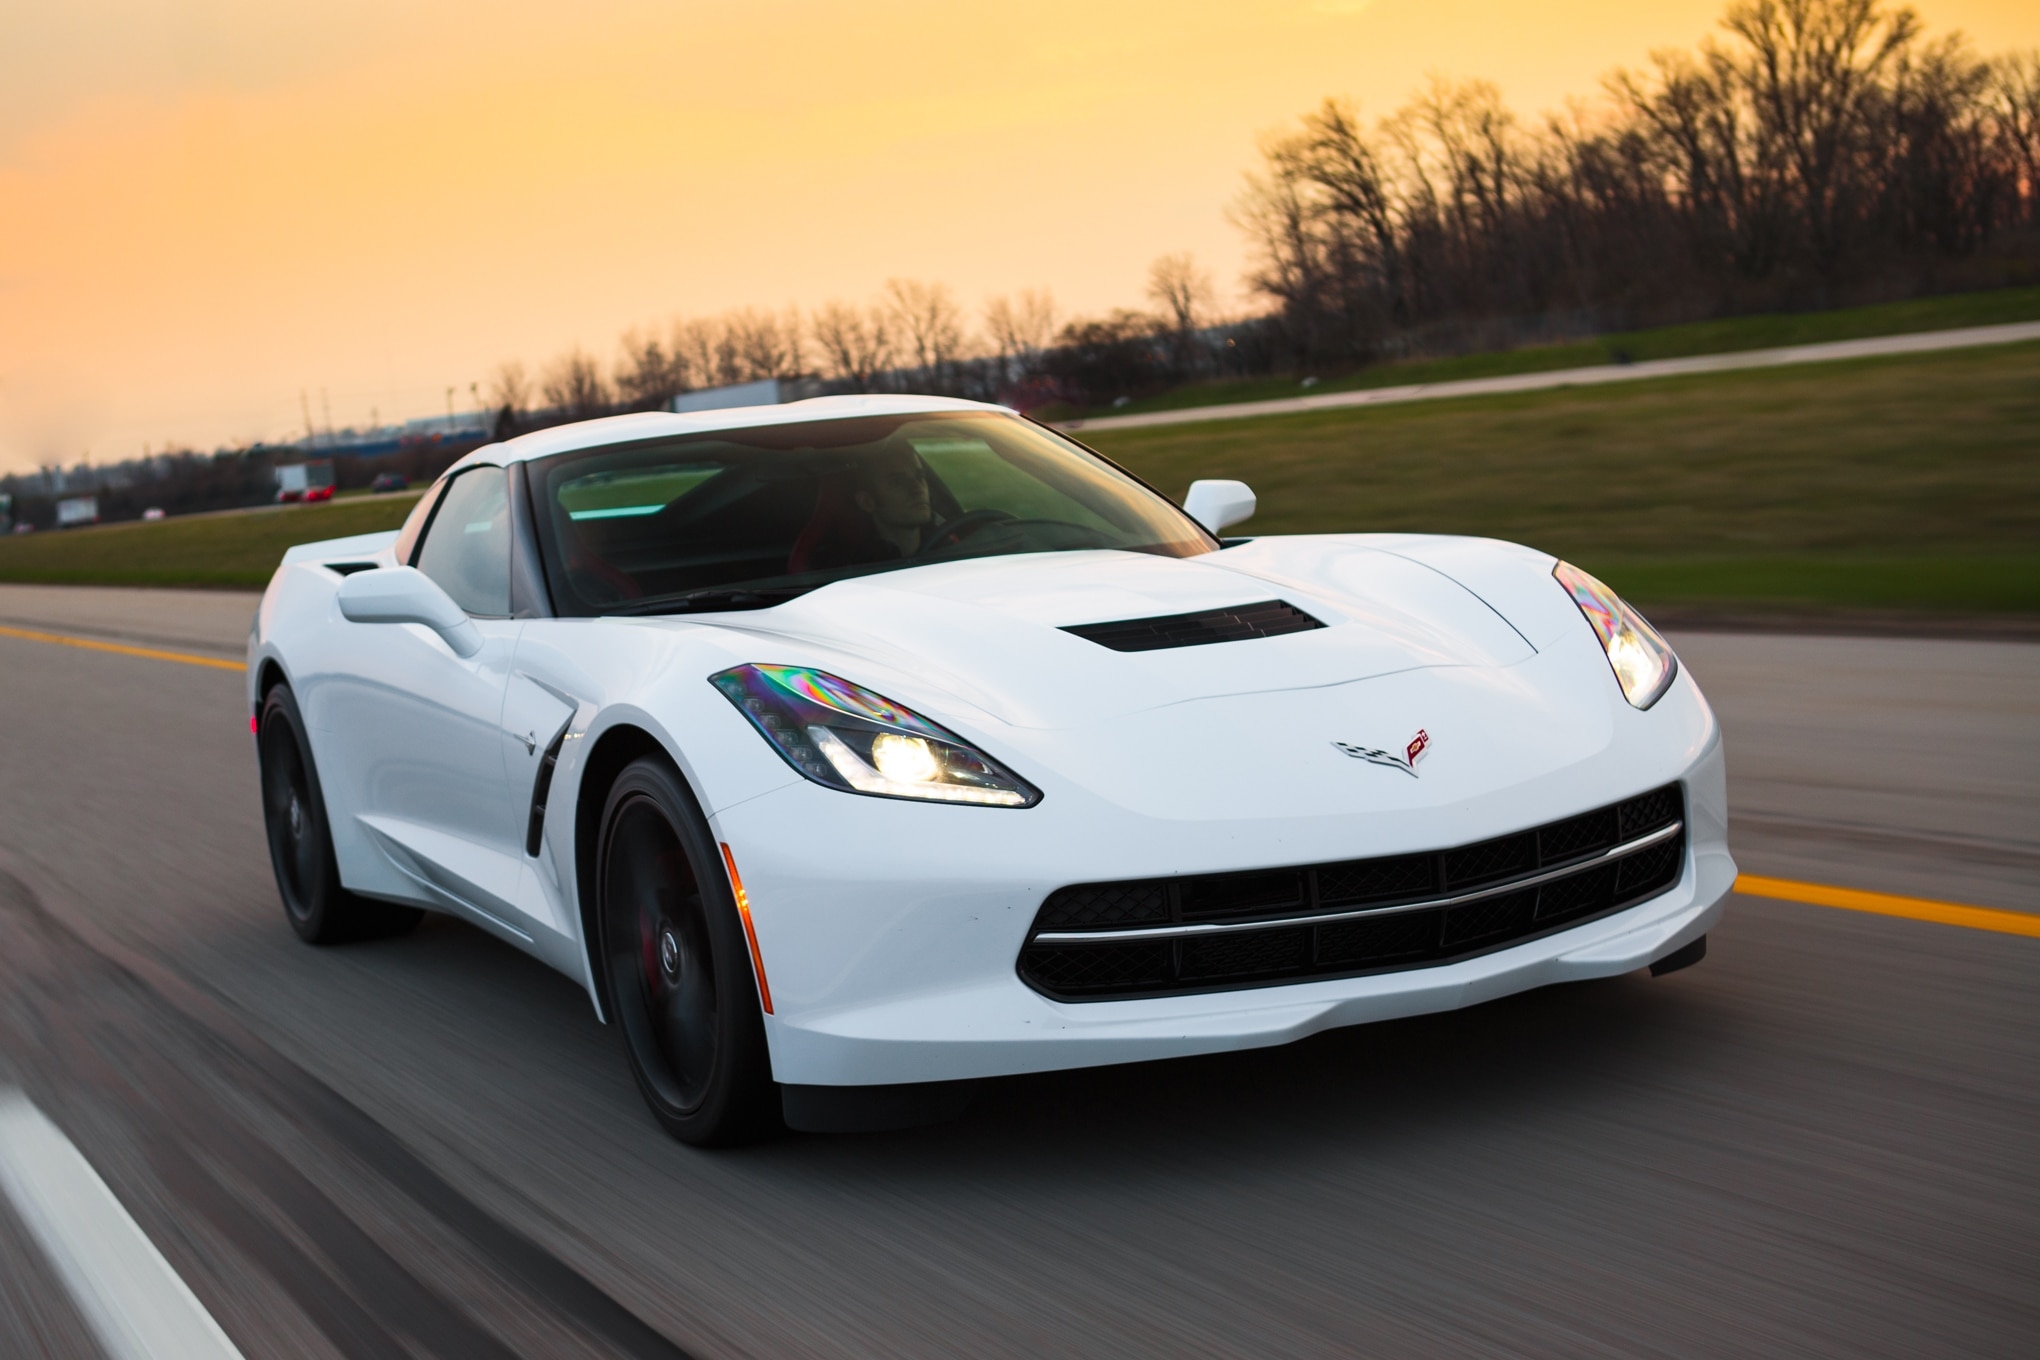 2014 Chevrolet Corvette Stingray Z51 Coupe Front Three Quarter In Motion 04